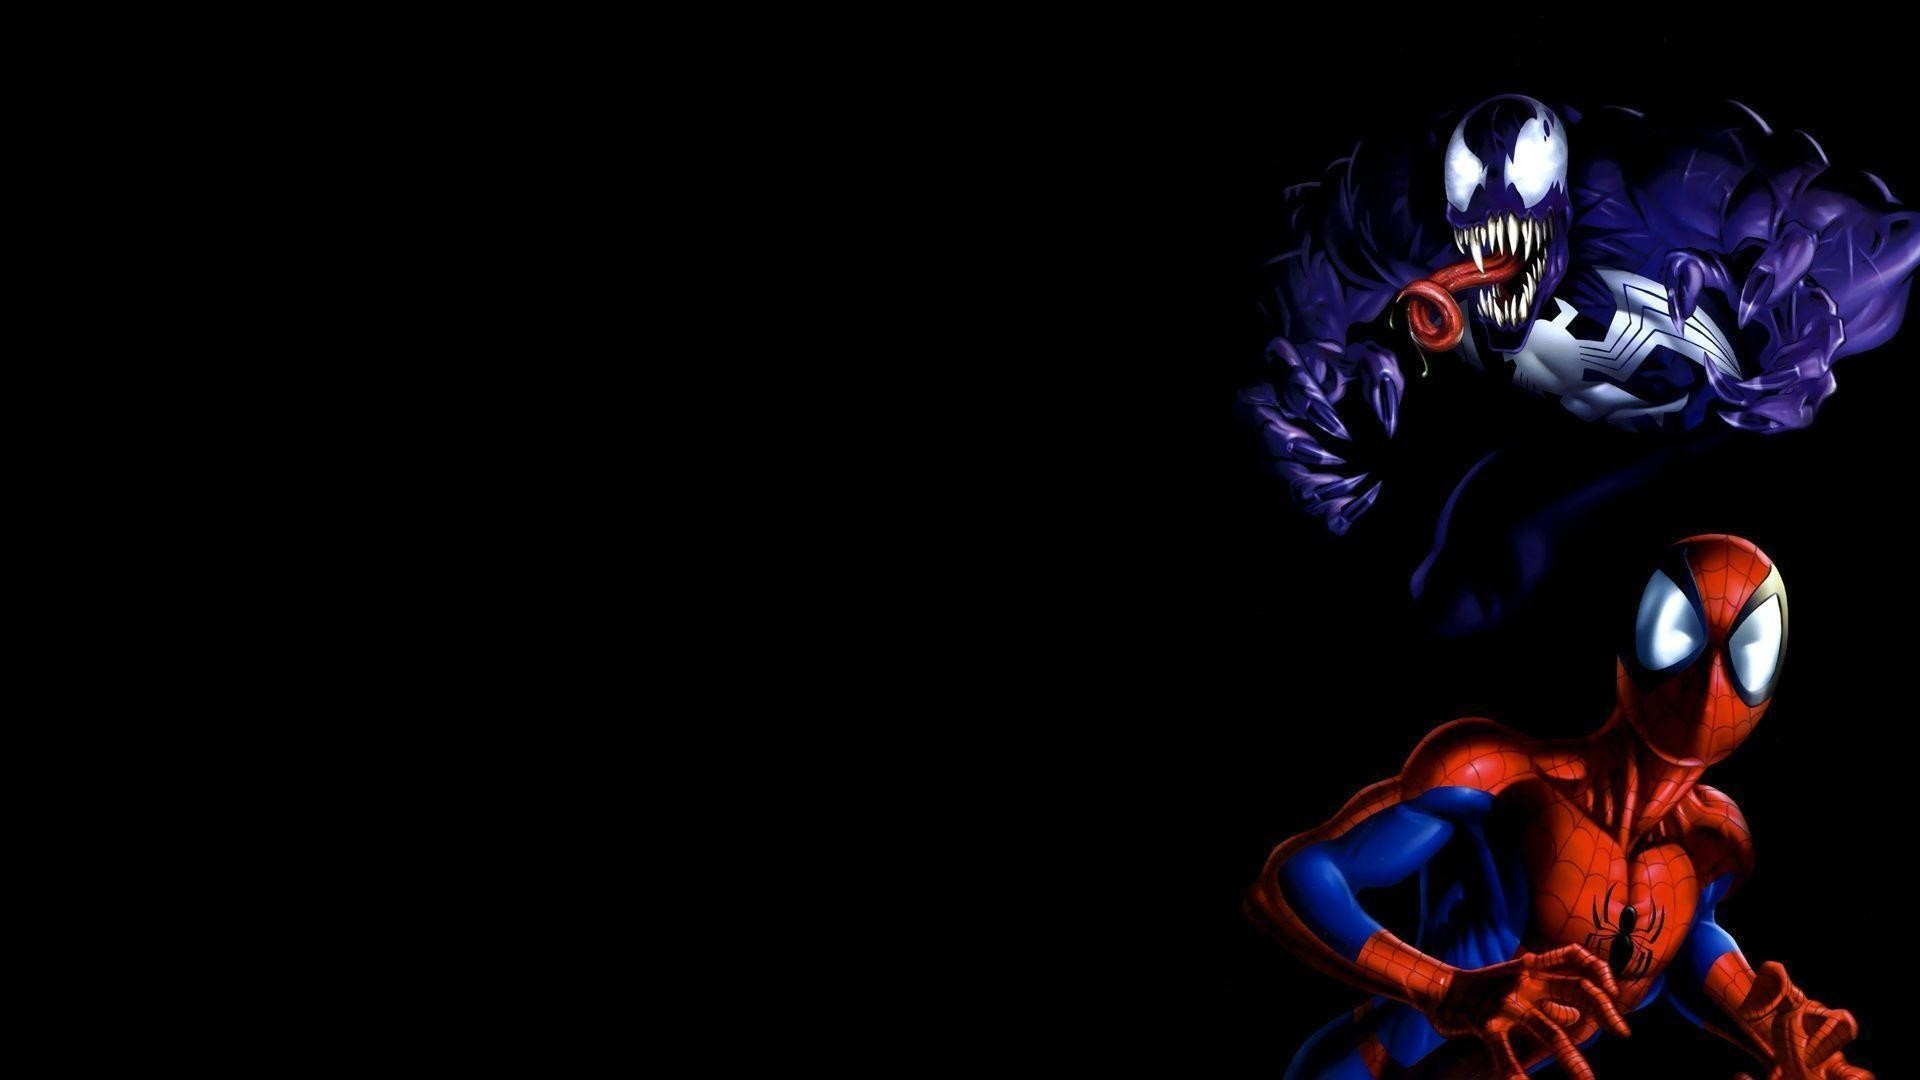 Res: 1920x1080,  Wallpapers For > Spiderman Venom Wallpaper Hd